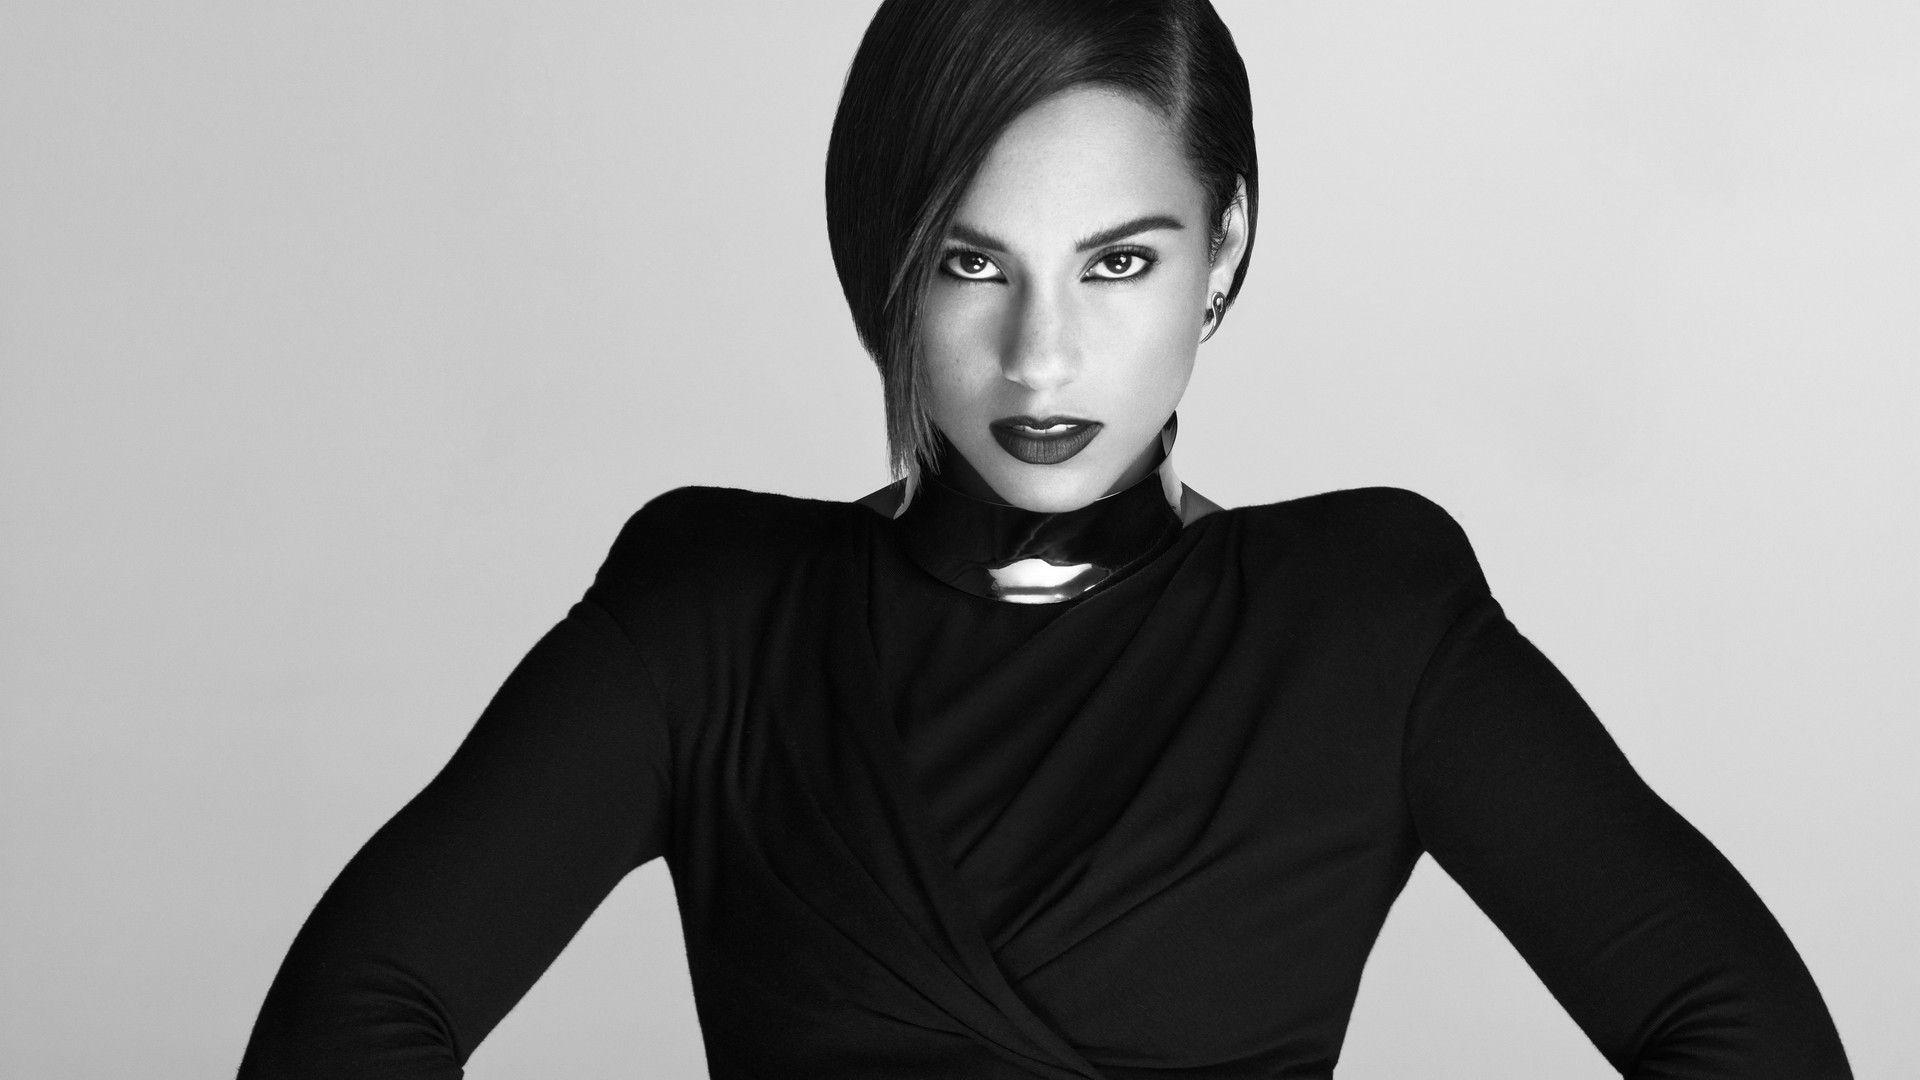 Alicia Keys Computer Wallpapers, Desktop Backgrounds 1920x1080 Id ...